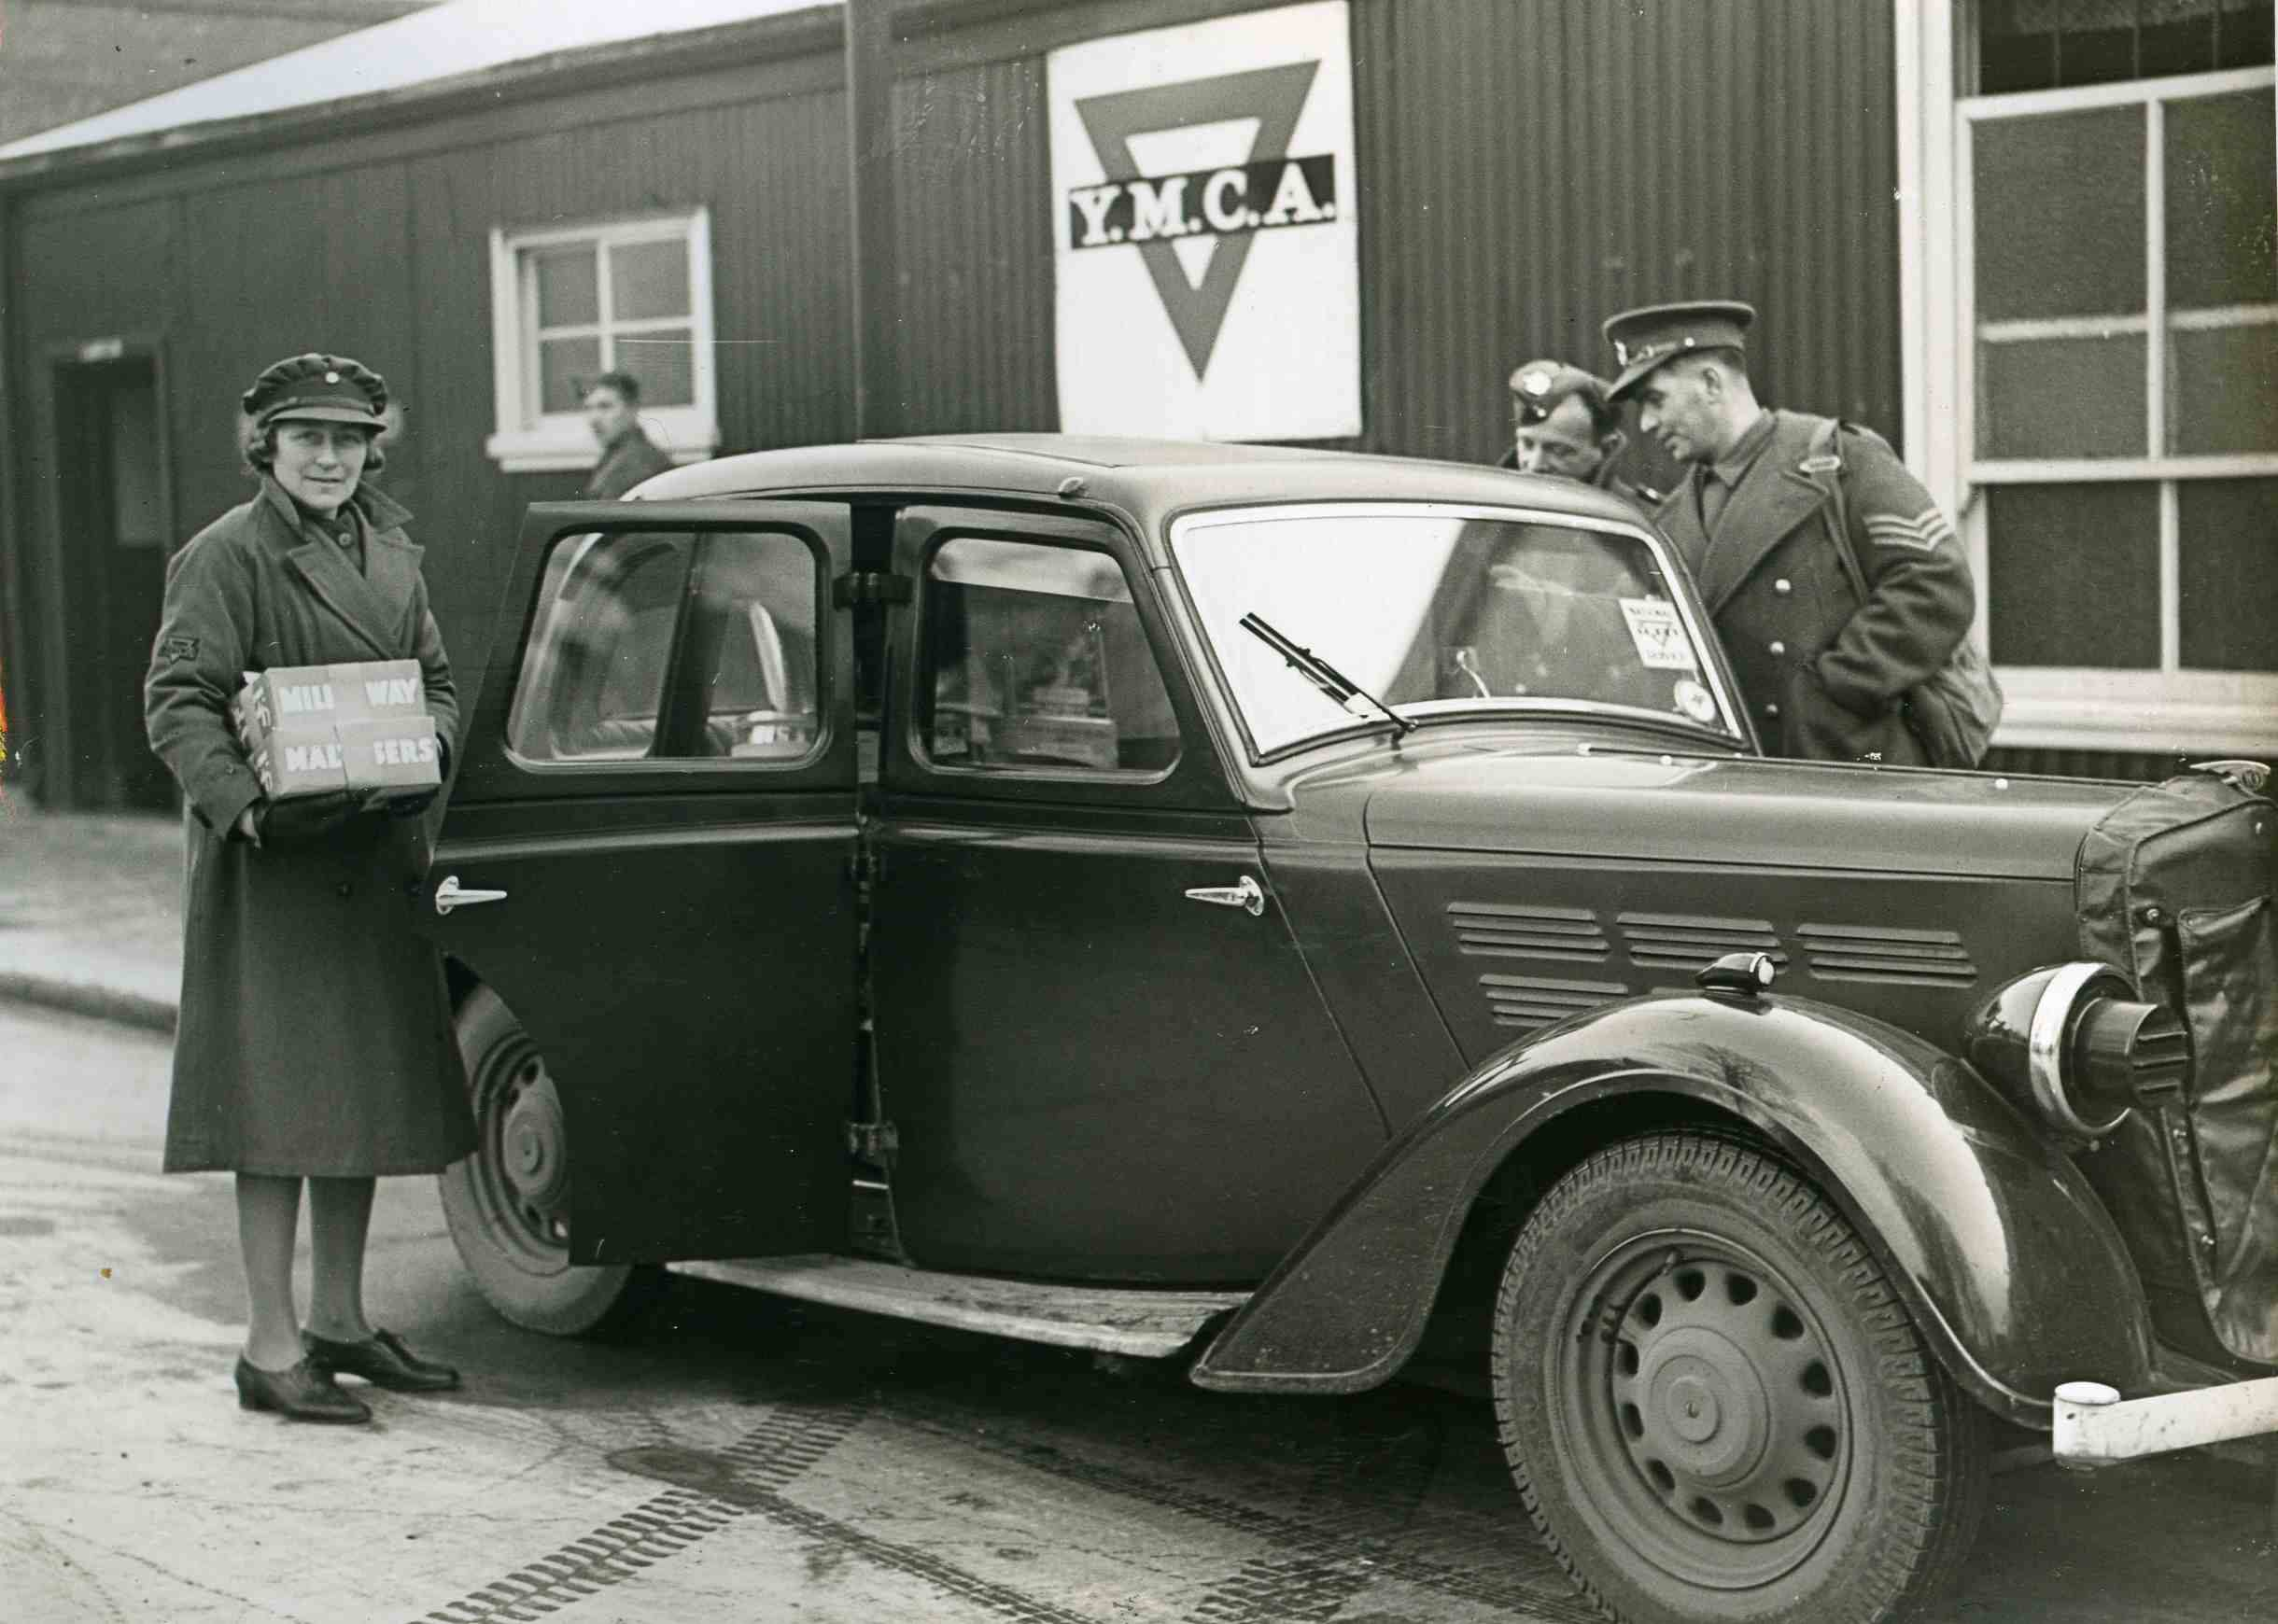 YMCA car allocated to Women's Auxiliary